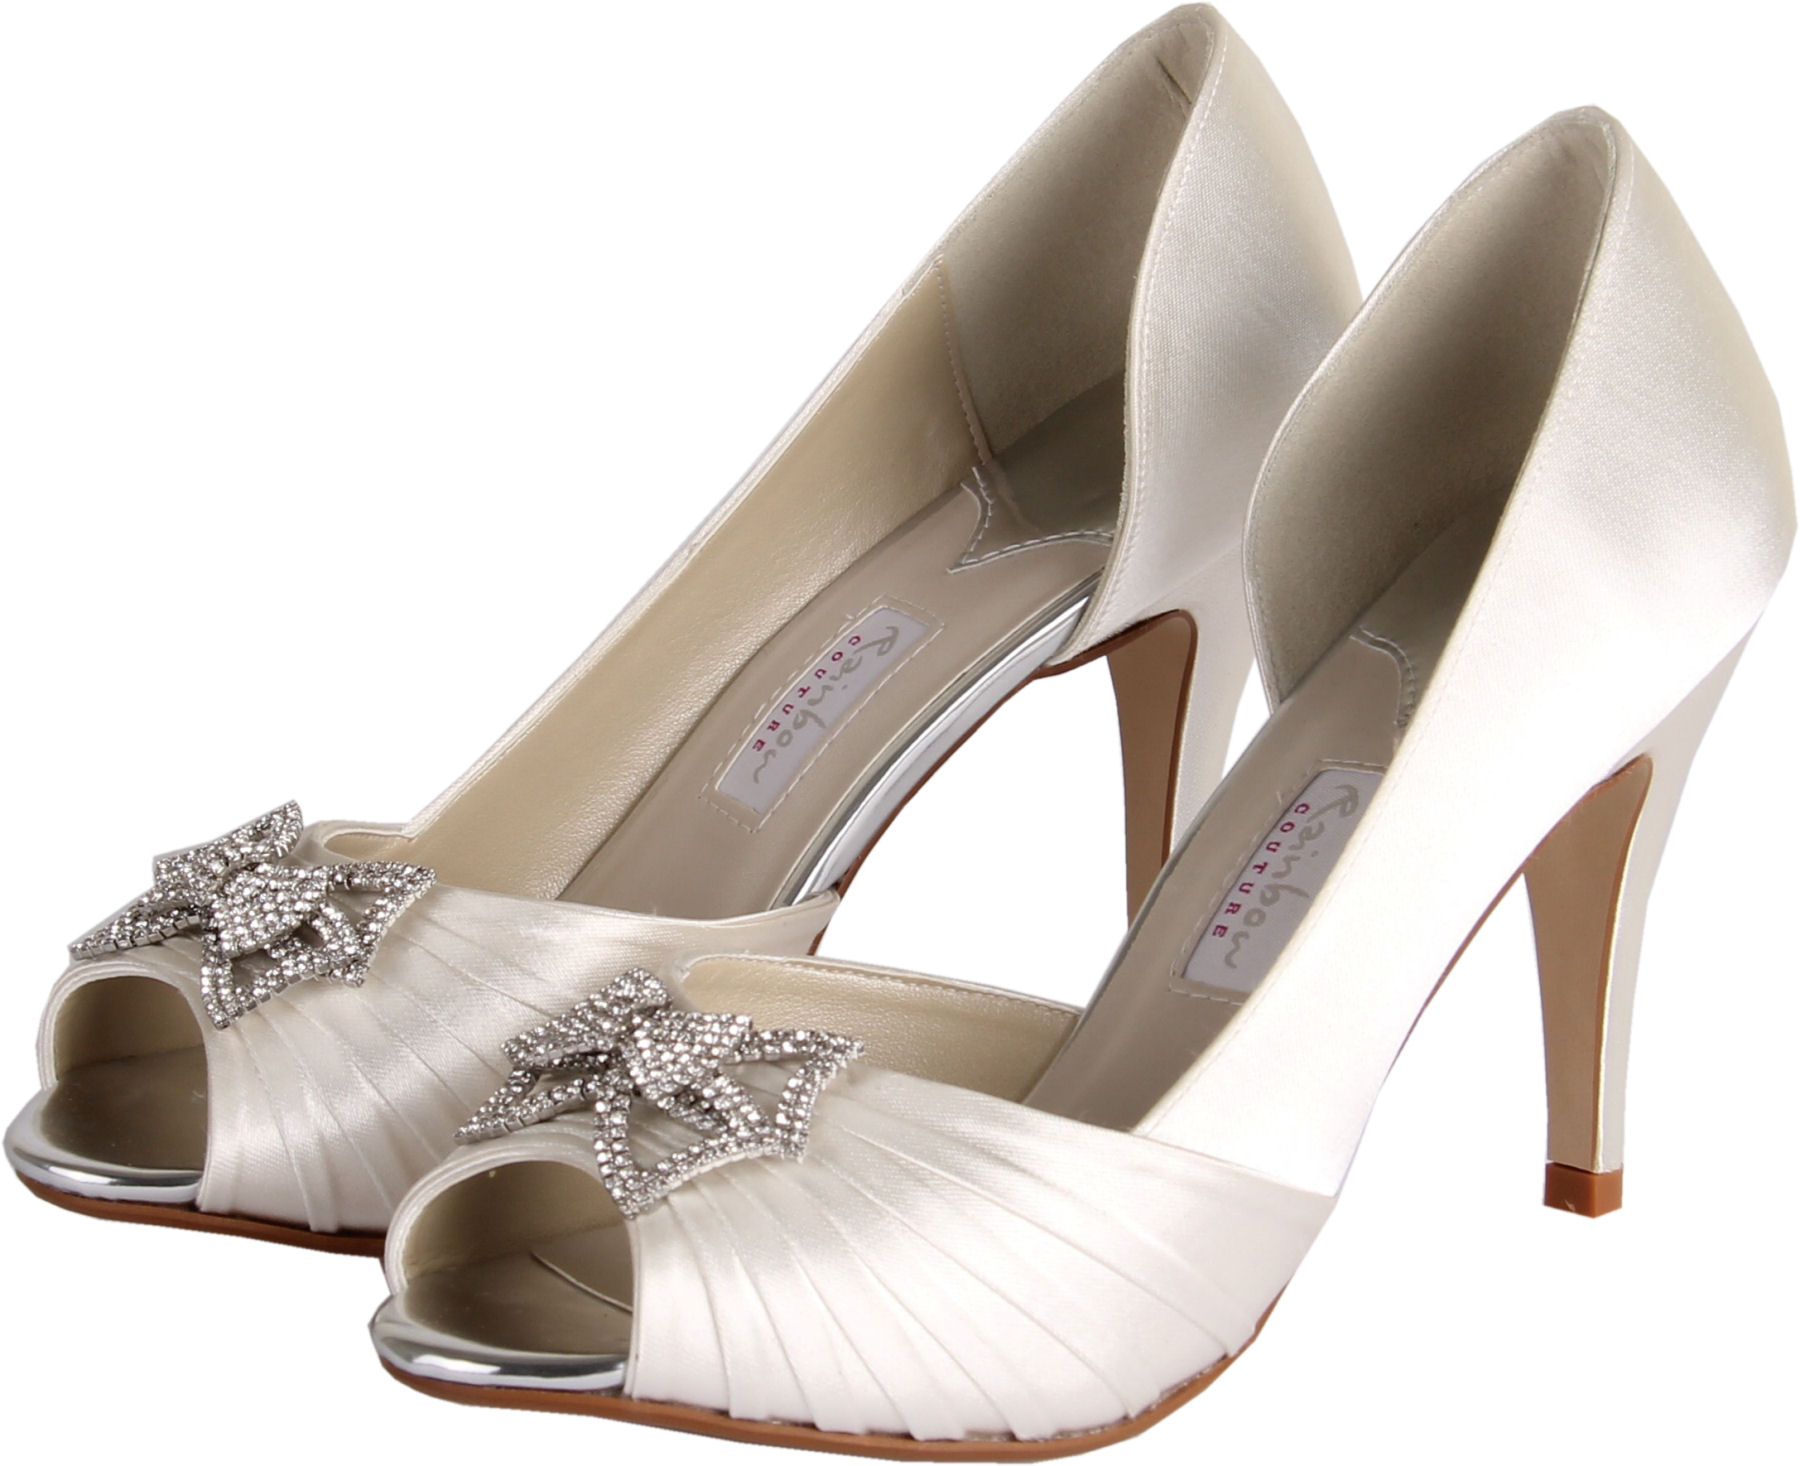 Rainbow Bridal Shoes chiara · more details · wedding shoes by rainbow ... KPKLQQB